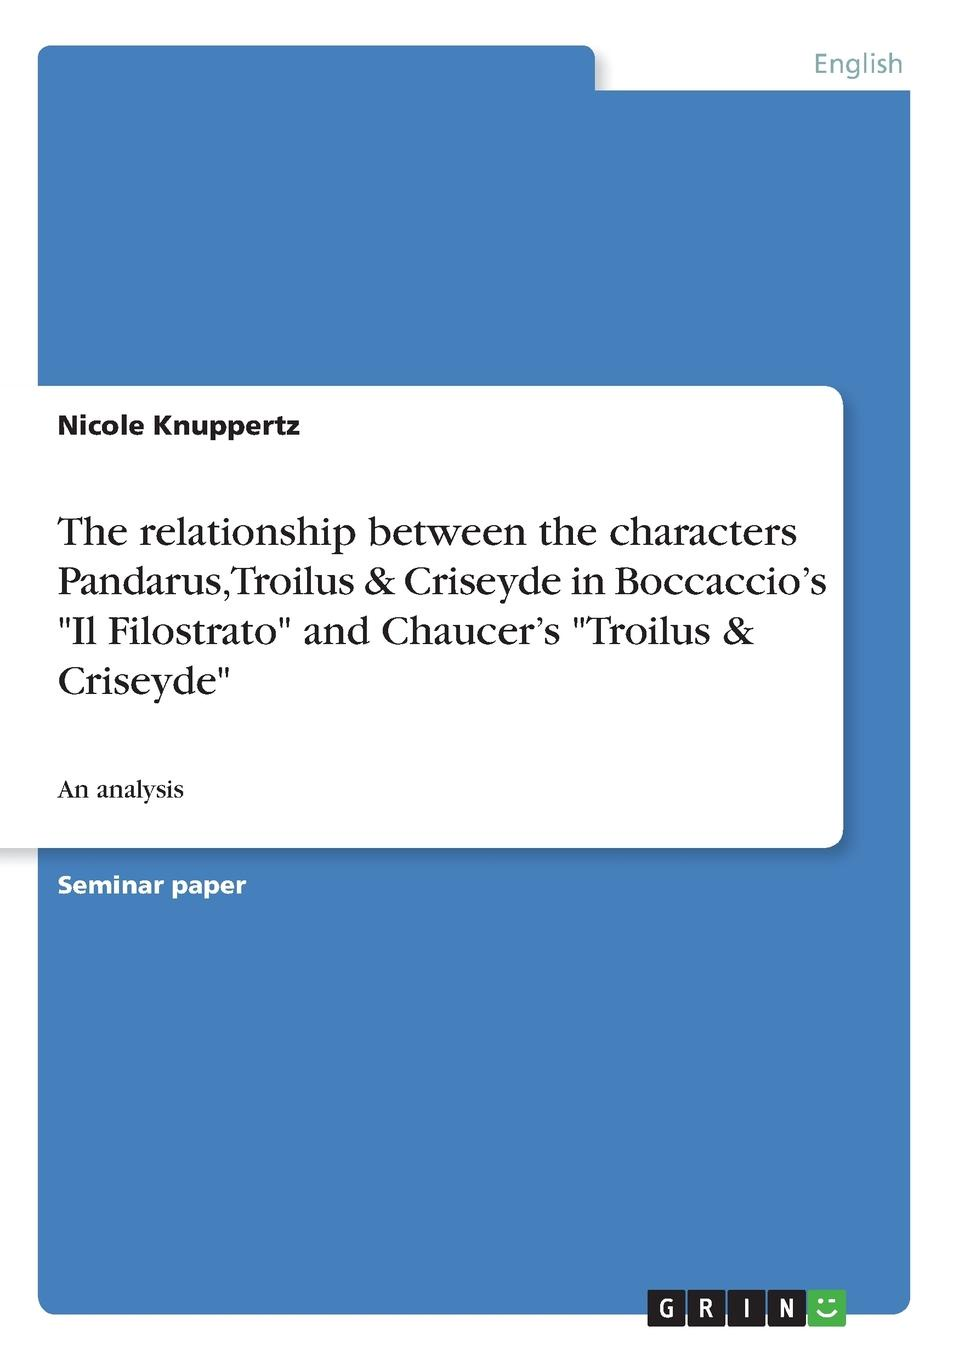 Nicole Knuppertz The relationship between the characters Pandarus, Troilus . Criseyde in Boccaccio.s Il Filostrato and Chaucer.s Troilus . Criseyde chaucer s language